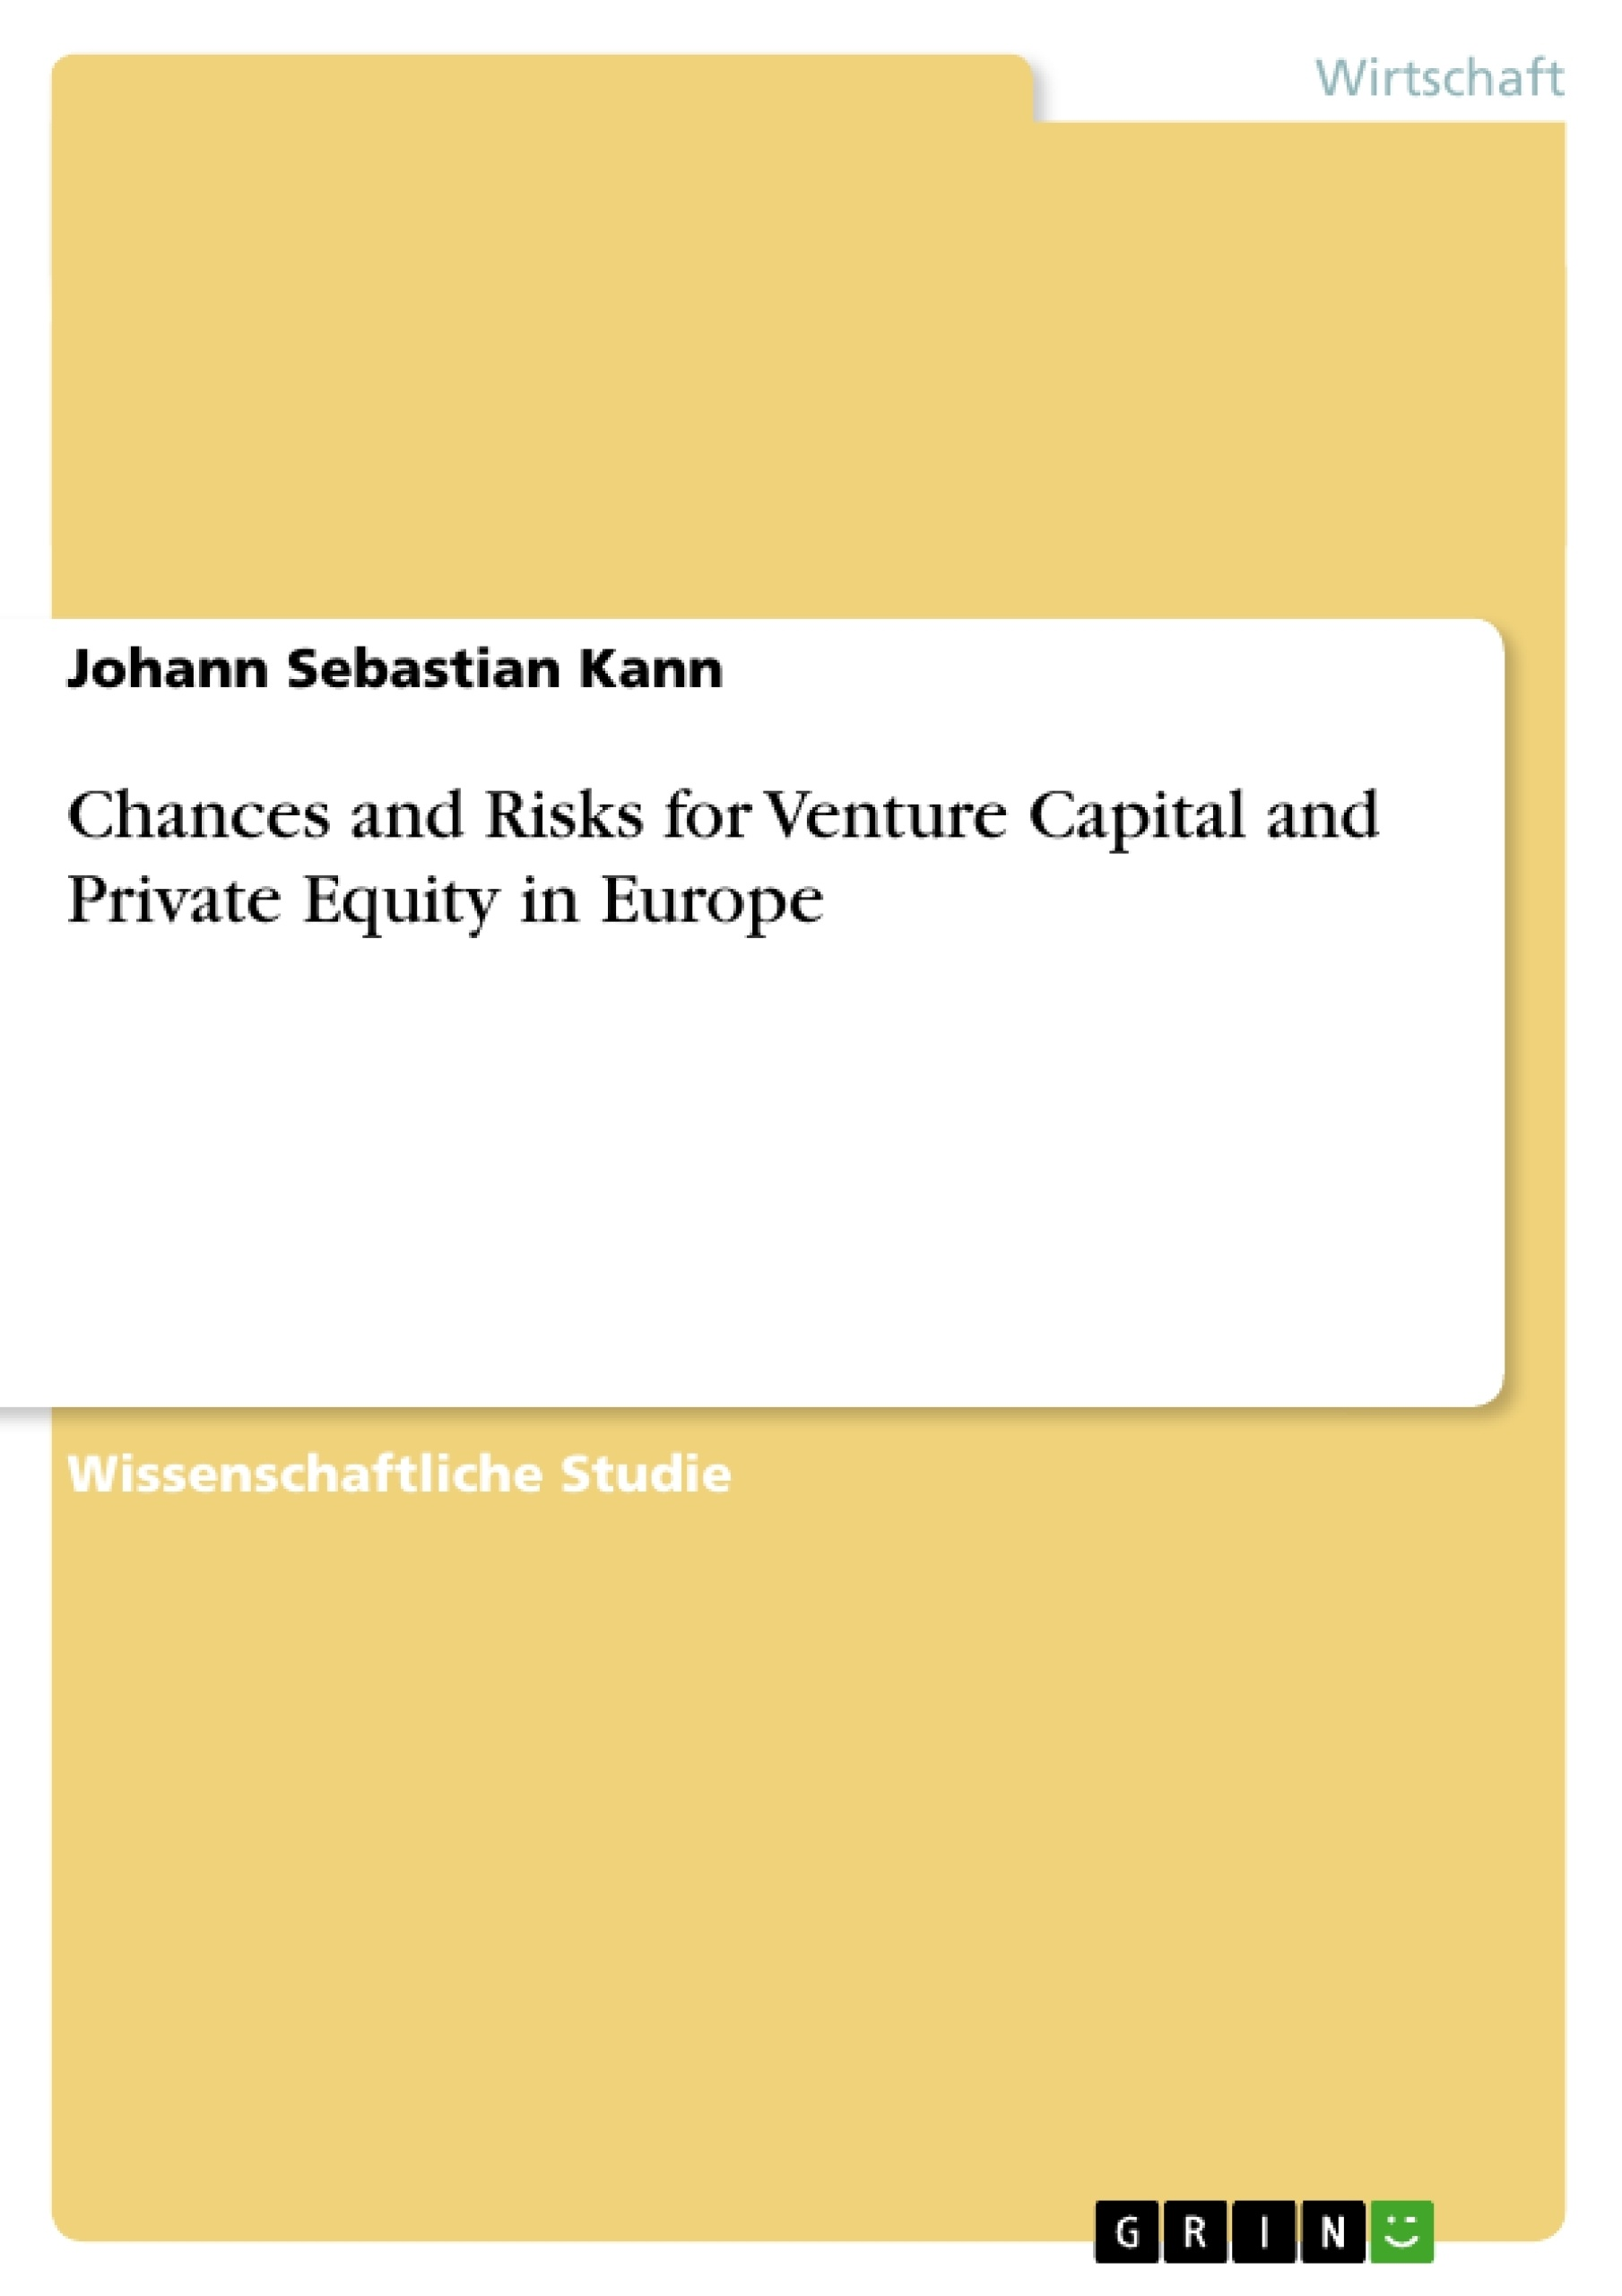 Titel: Chances and Risks for Venture Capital and Private Equity in Europe